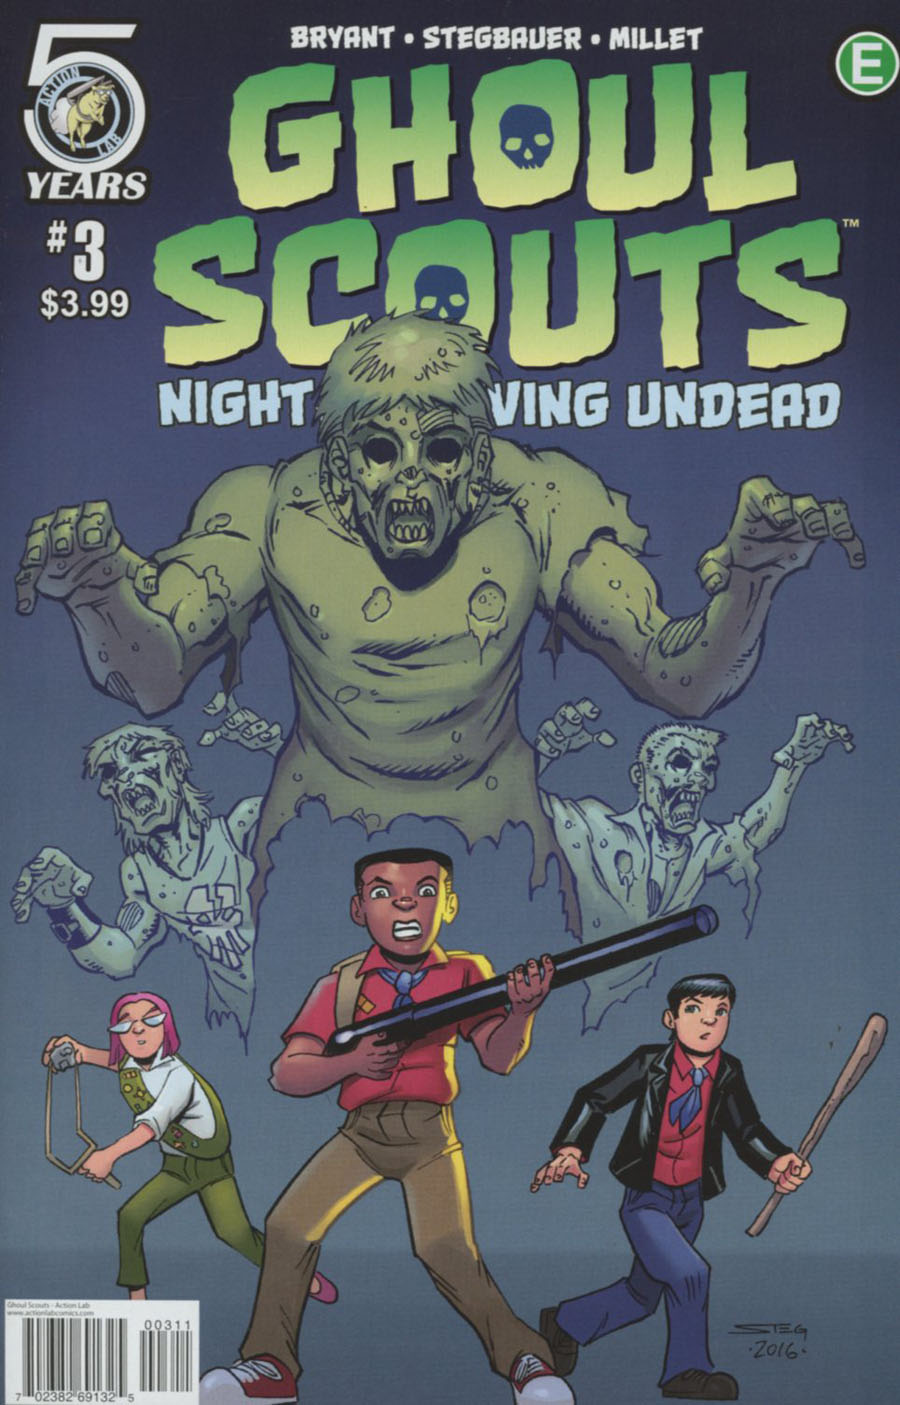 Ghoul Scouts Night Of The Unliving Undead #3 Cover A Regular Mark Stegbauer Cover